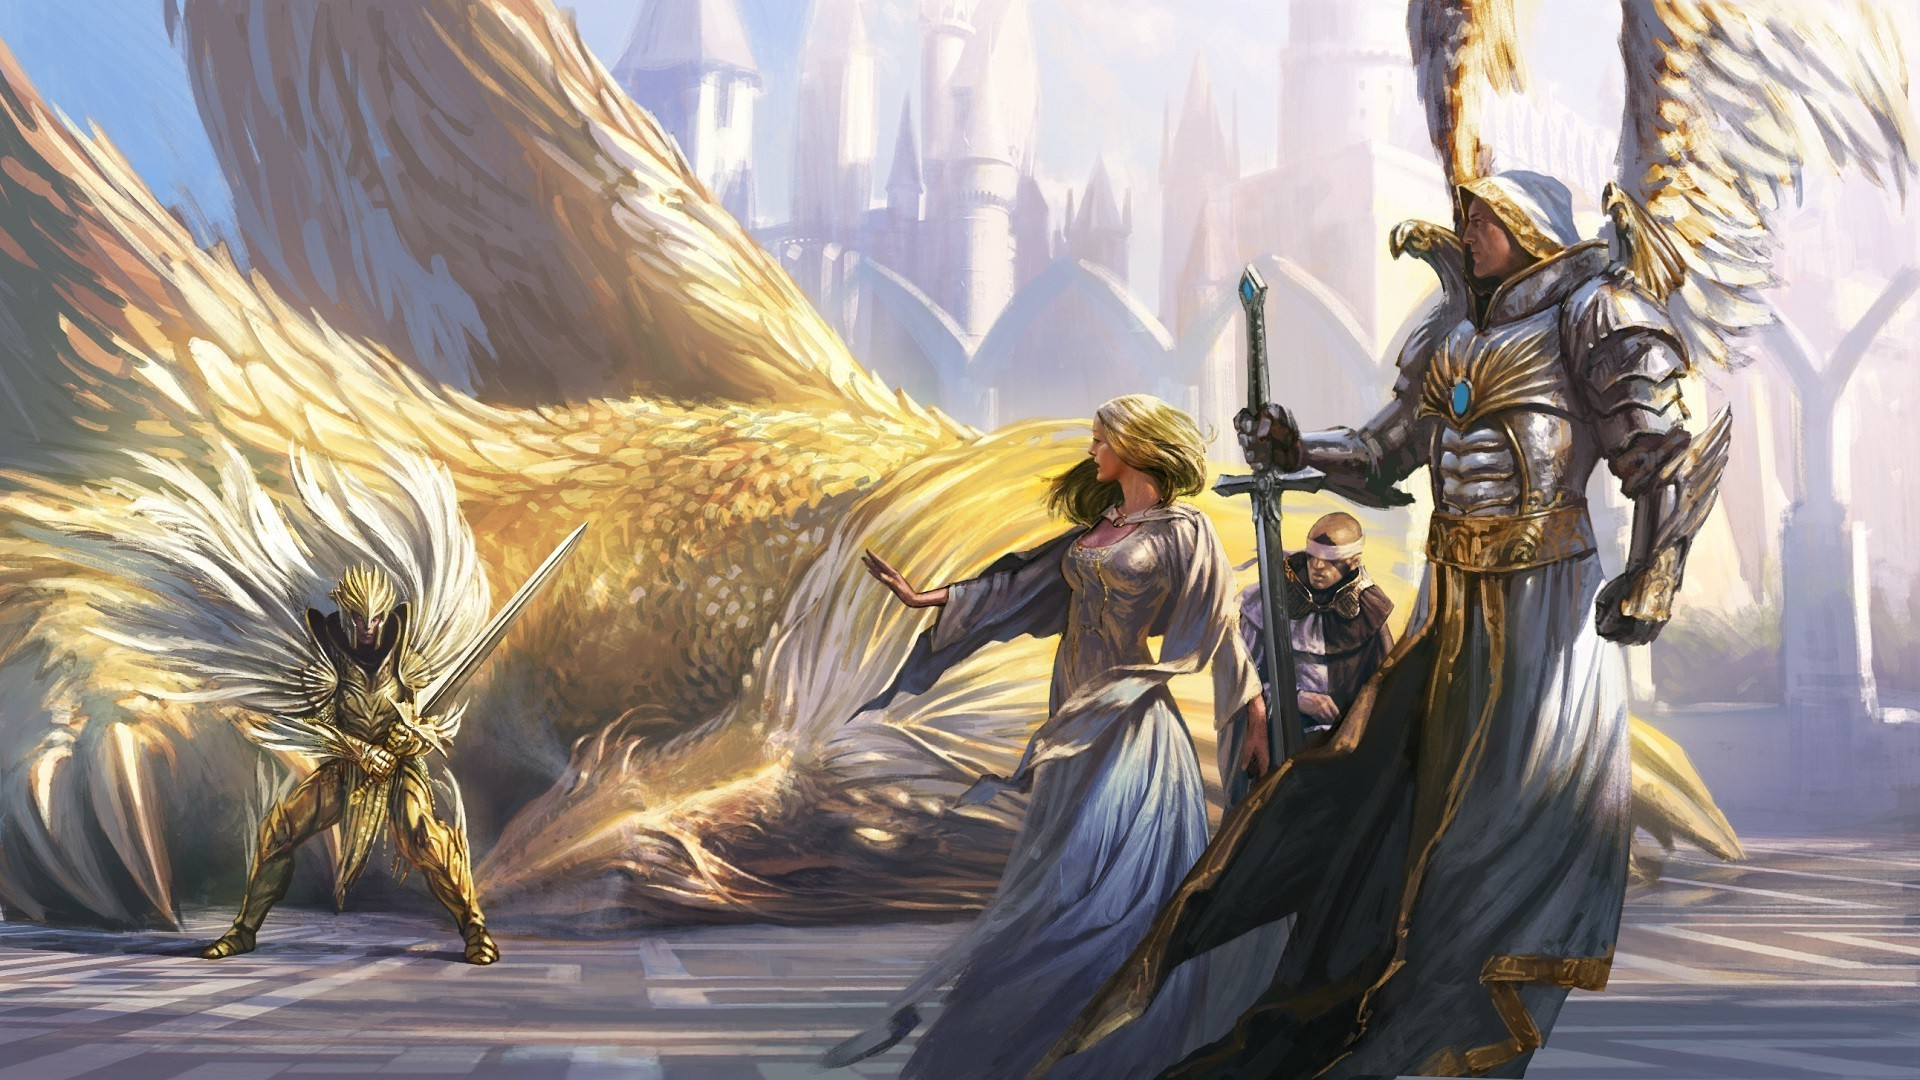 heroes of might and magic wallpaper 73 images